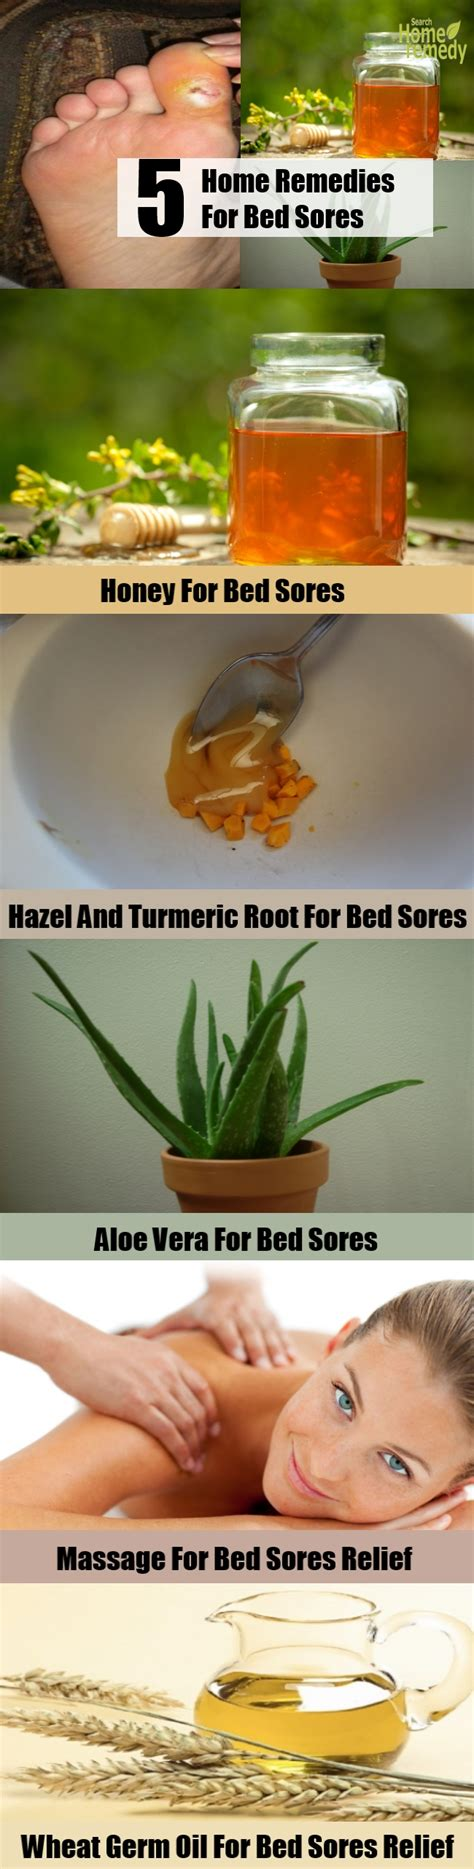 sores bed remedies cure remedy natural treatments shares